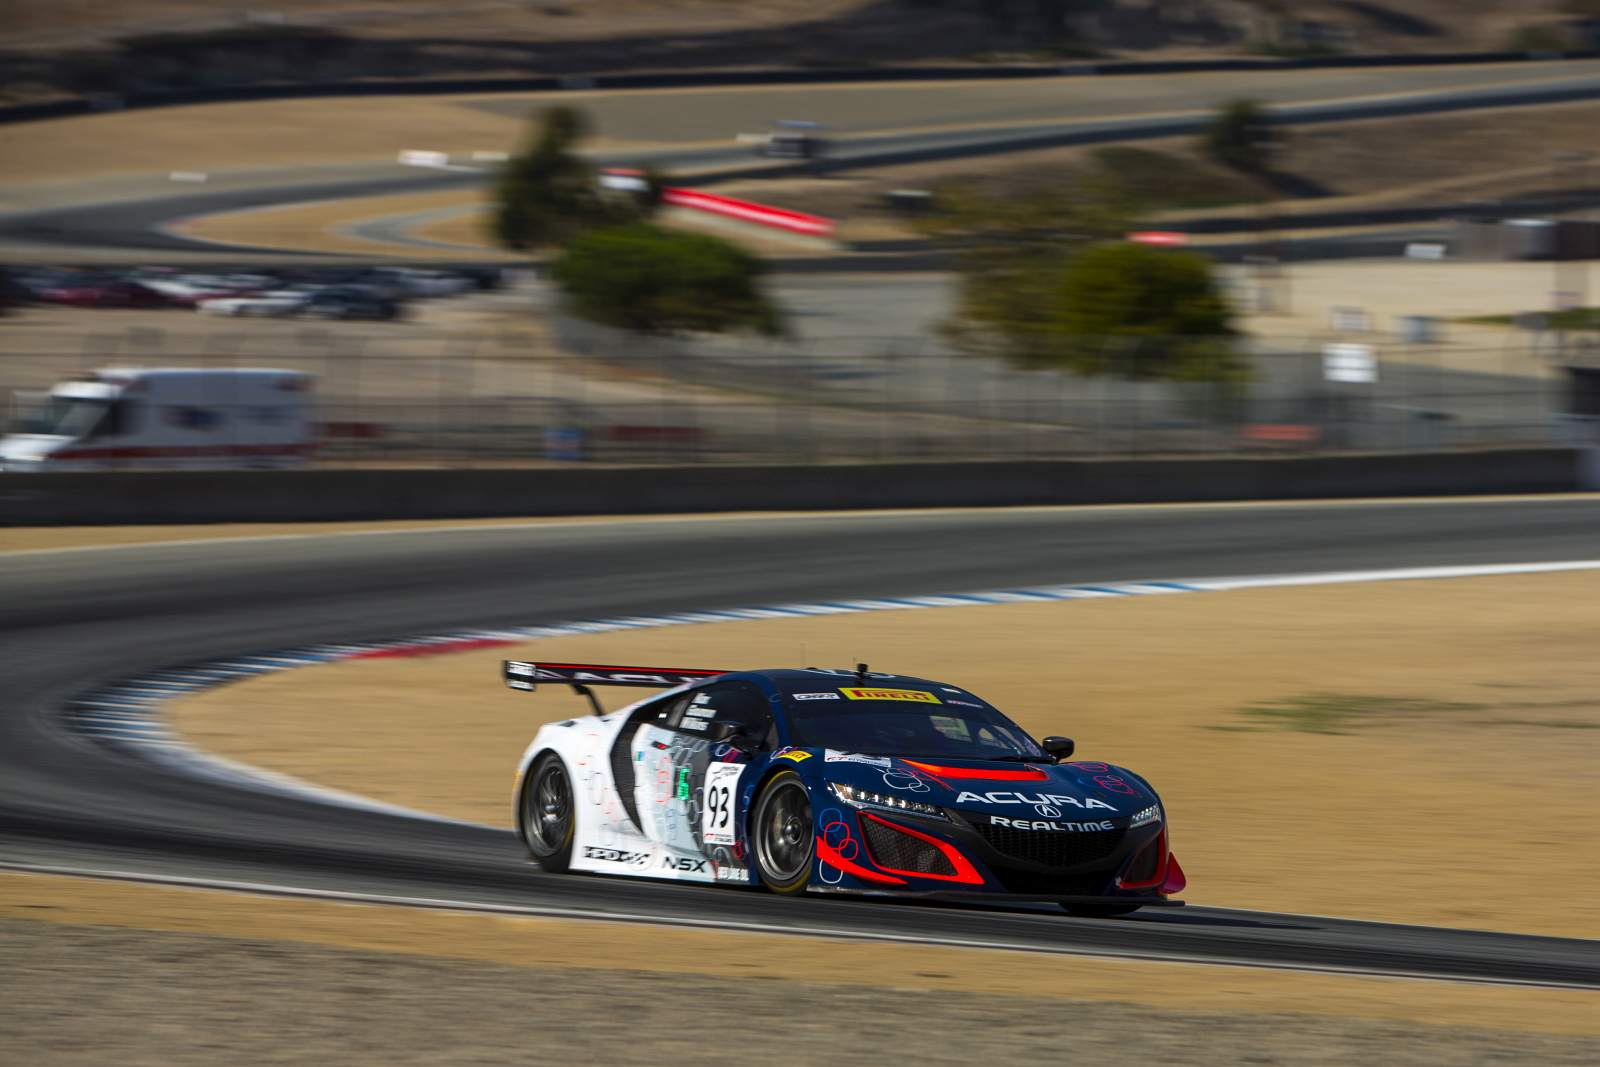 peter-kox-realtime-racing-pirelli-world-challenge-california-008